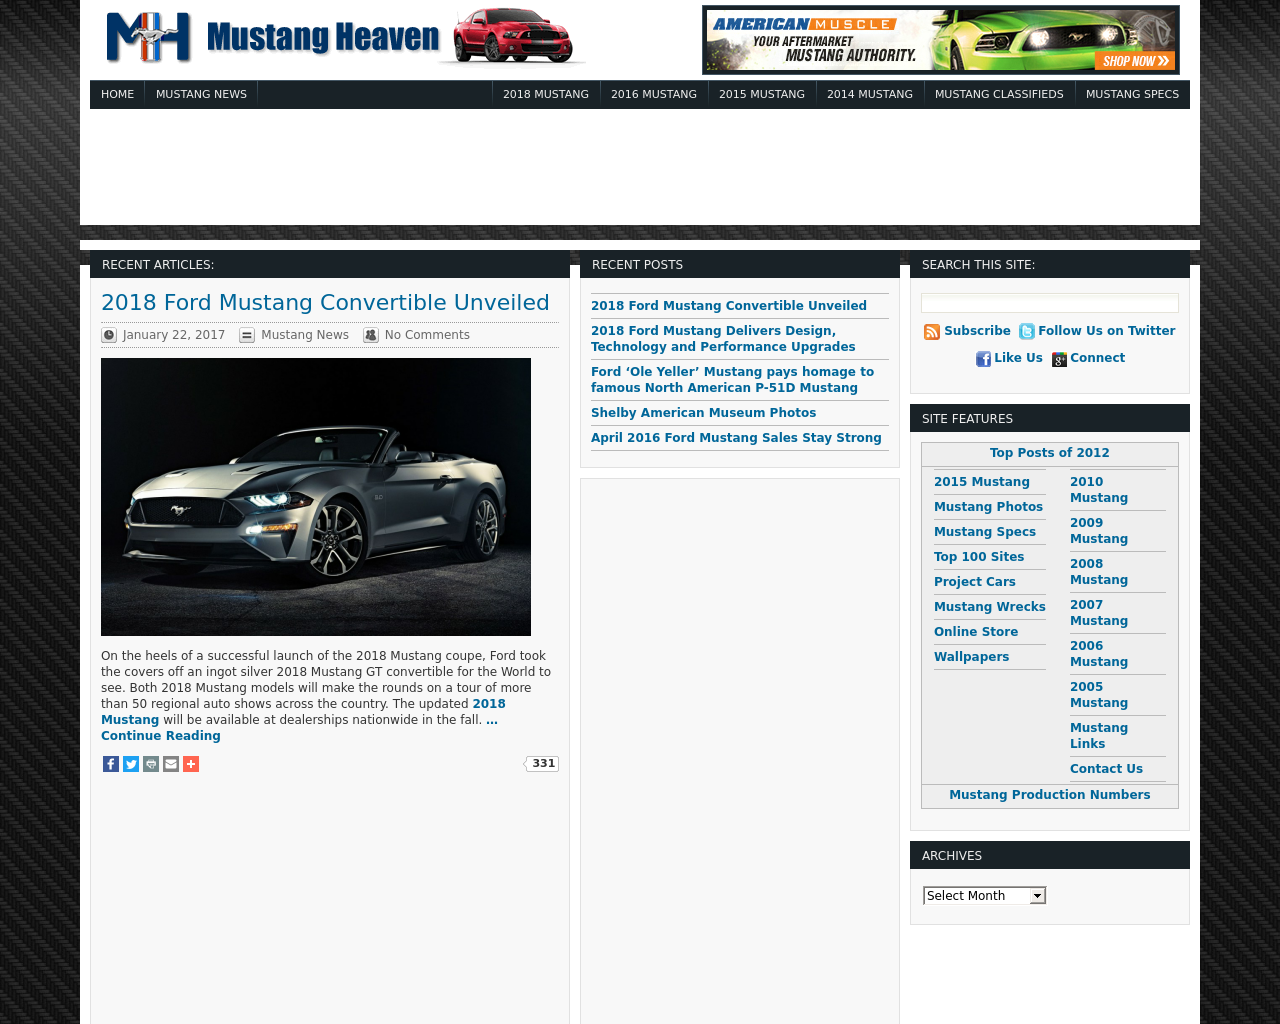 Mustang-Heaven-Advertising-Reviews-Pricing